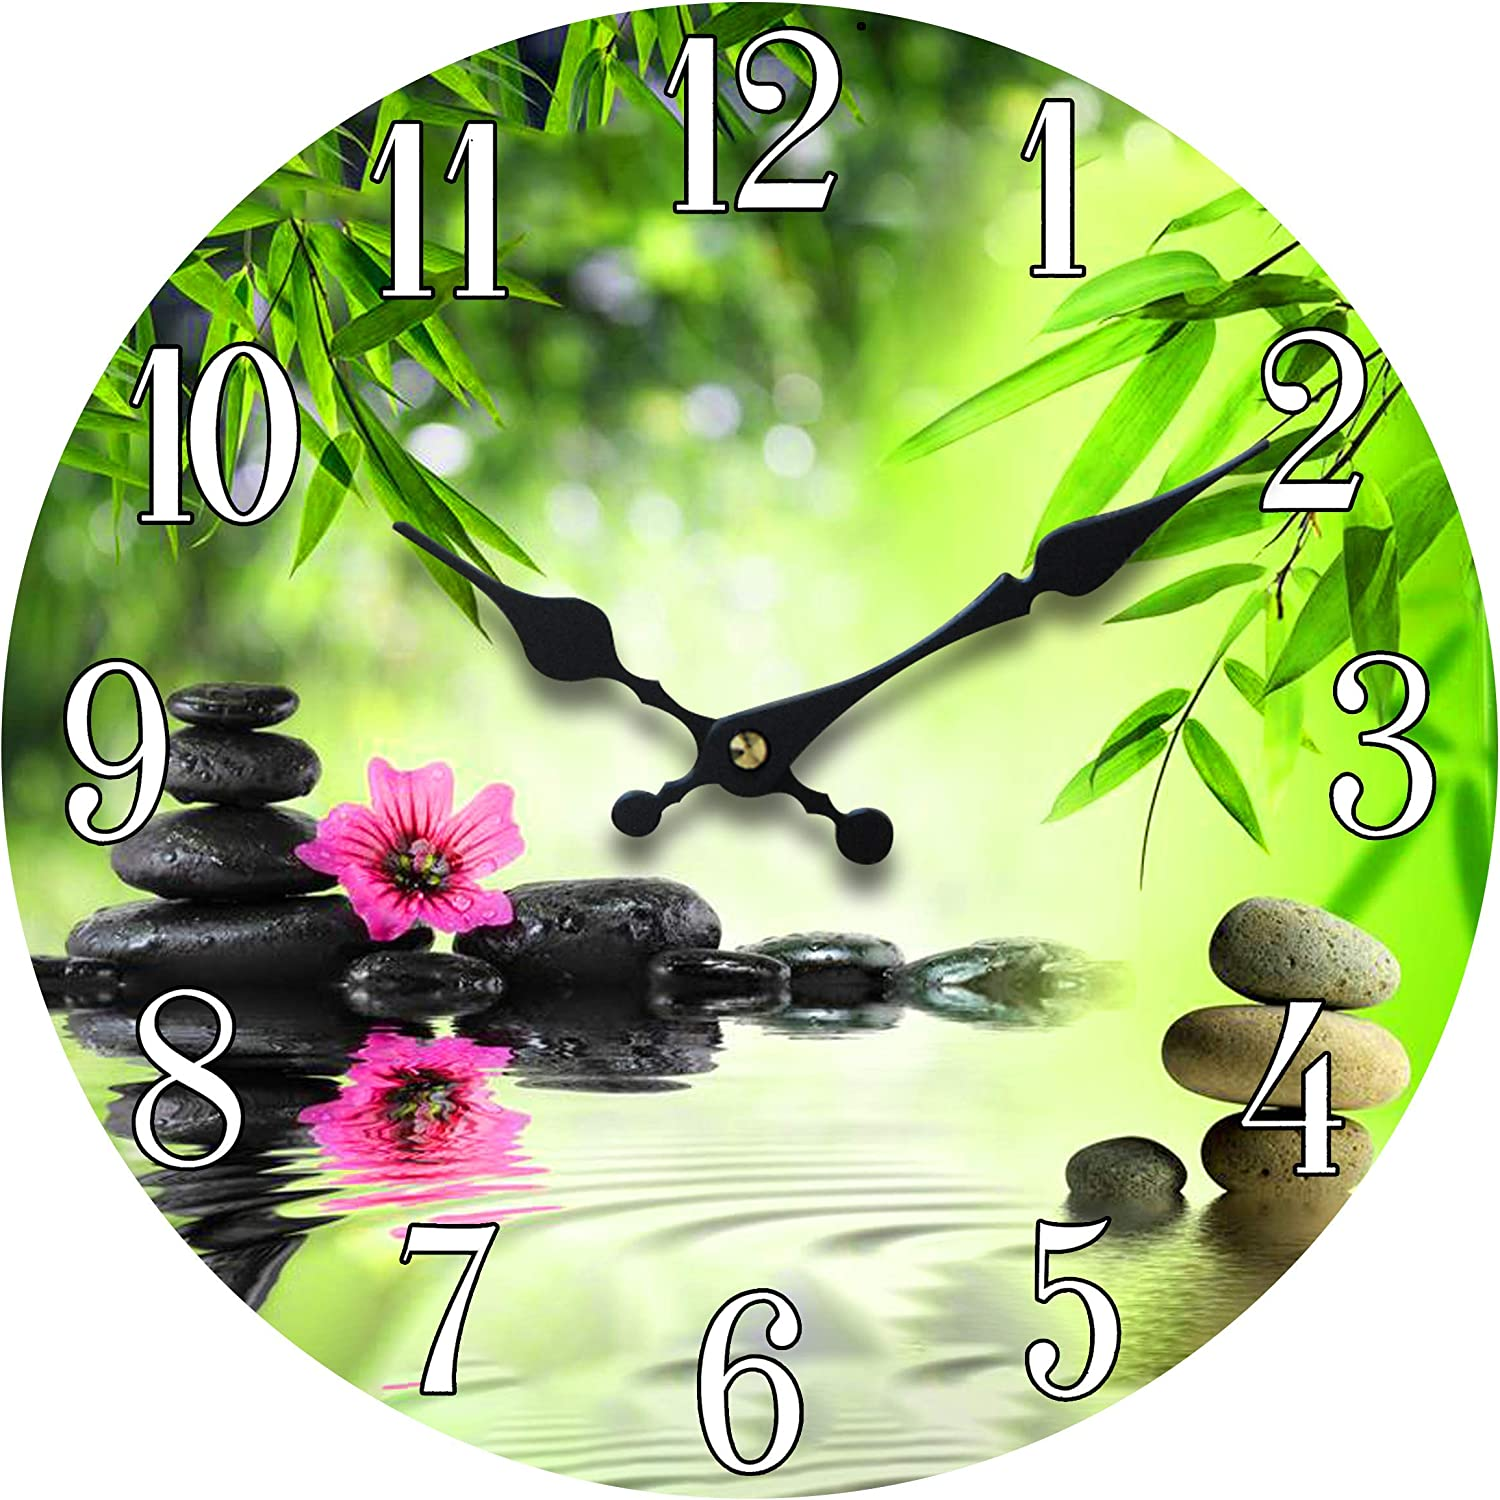 Wall Clock Glass Serene Scene Decorative 13 Inch Zen Theme Perfect Decor for Kitchen Bathroom Office Rustic Battery Operated Clocks Great Theme for Bedroom Peaceful Decoration Ticking Water